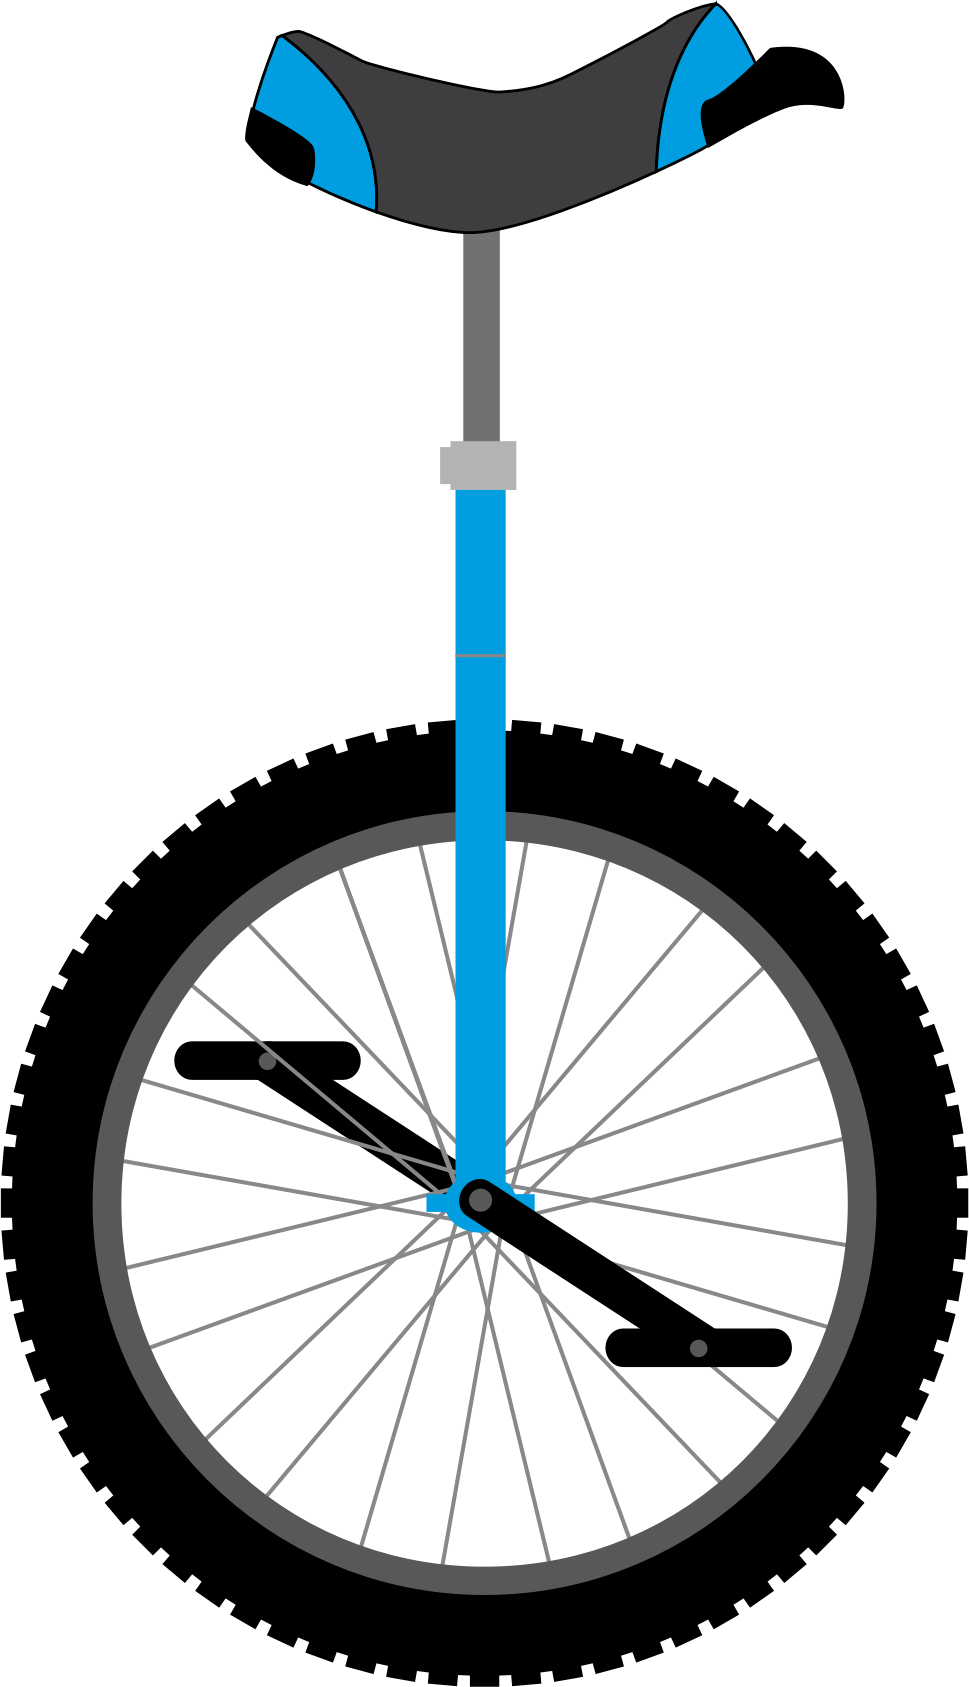 Unicycle vector clipart image - Free stock photo - Public ...